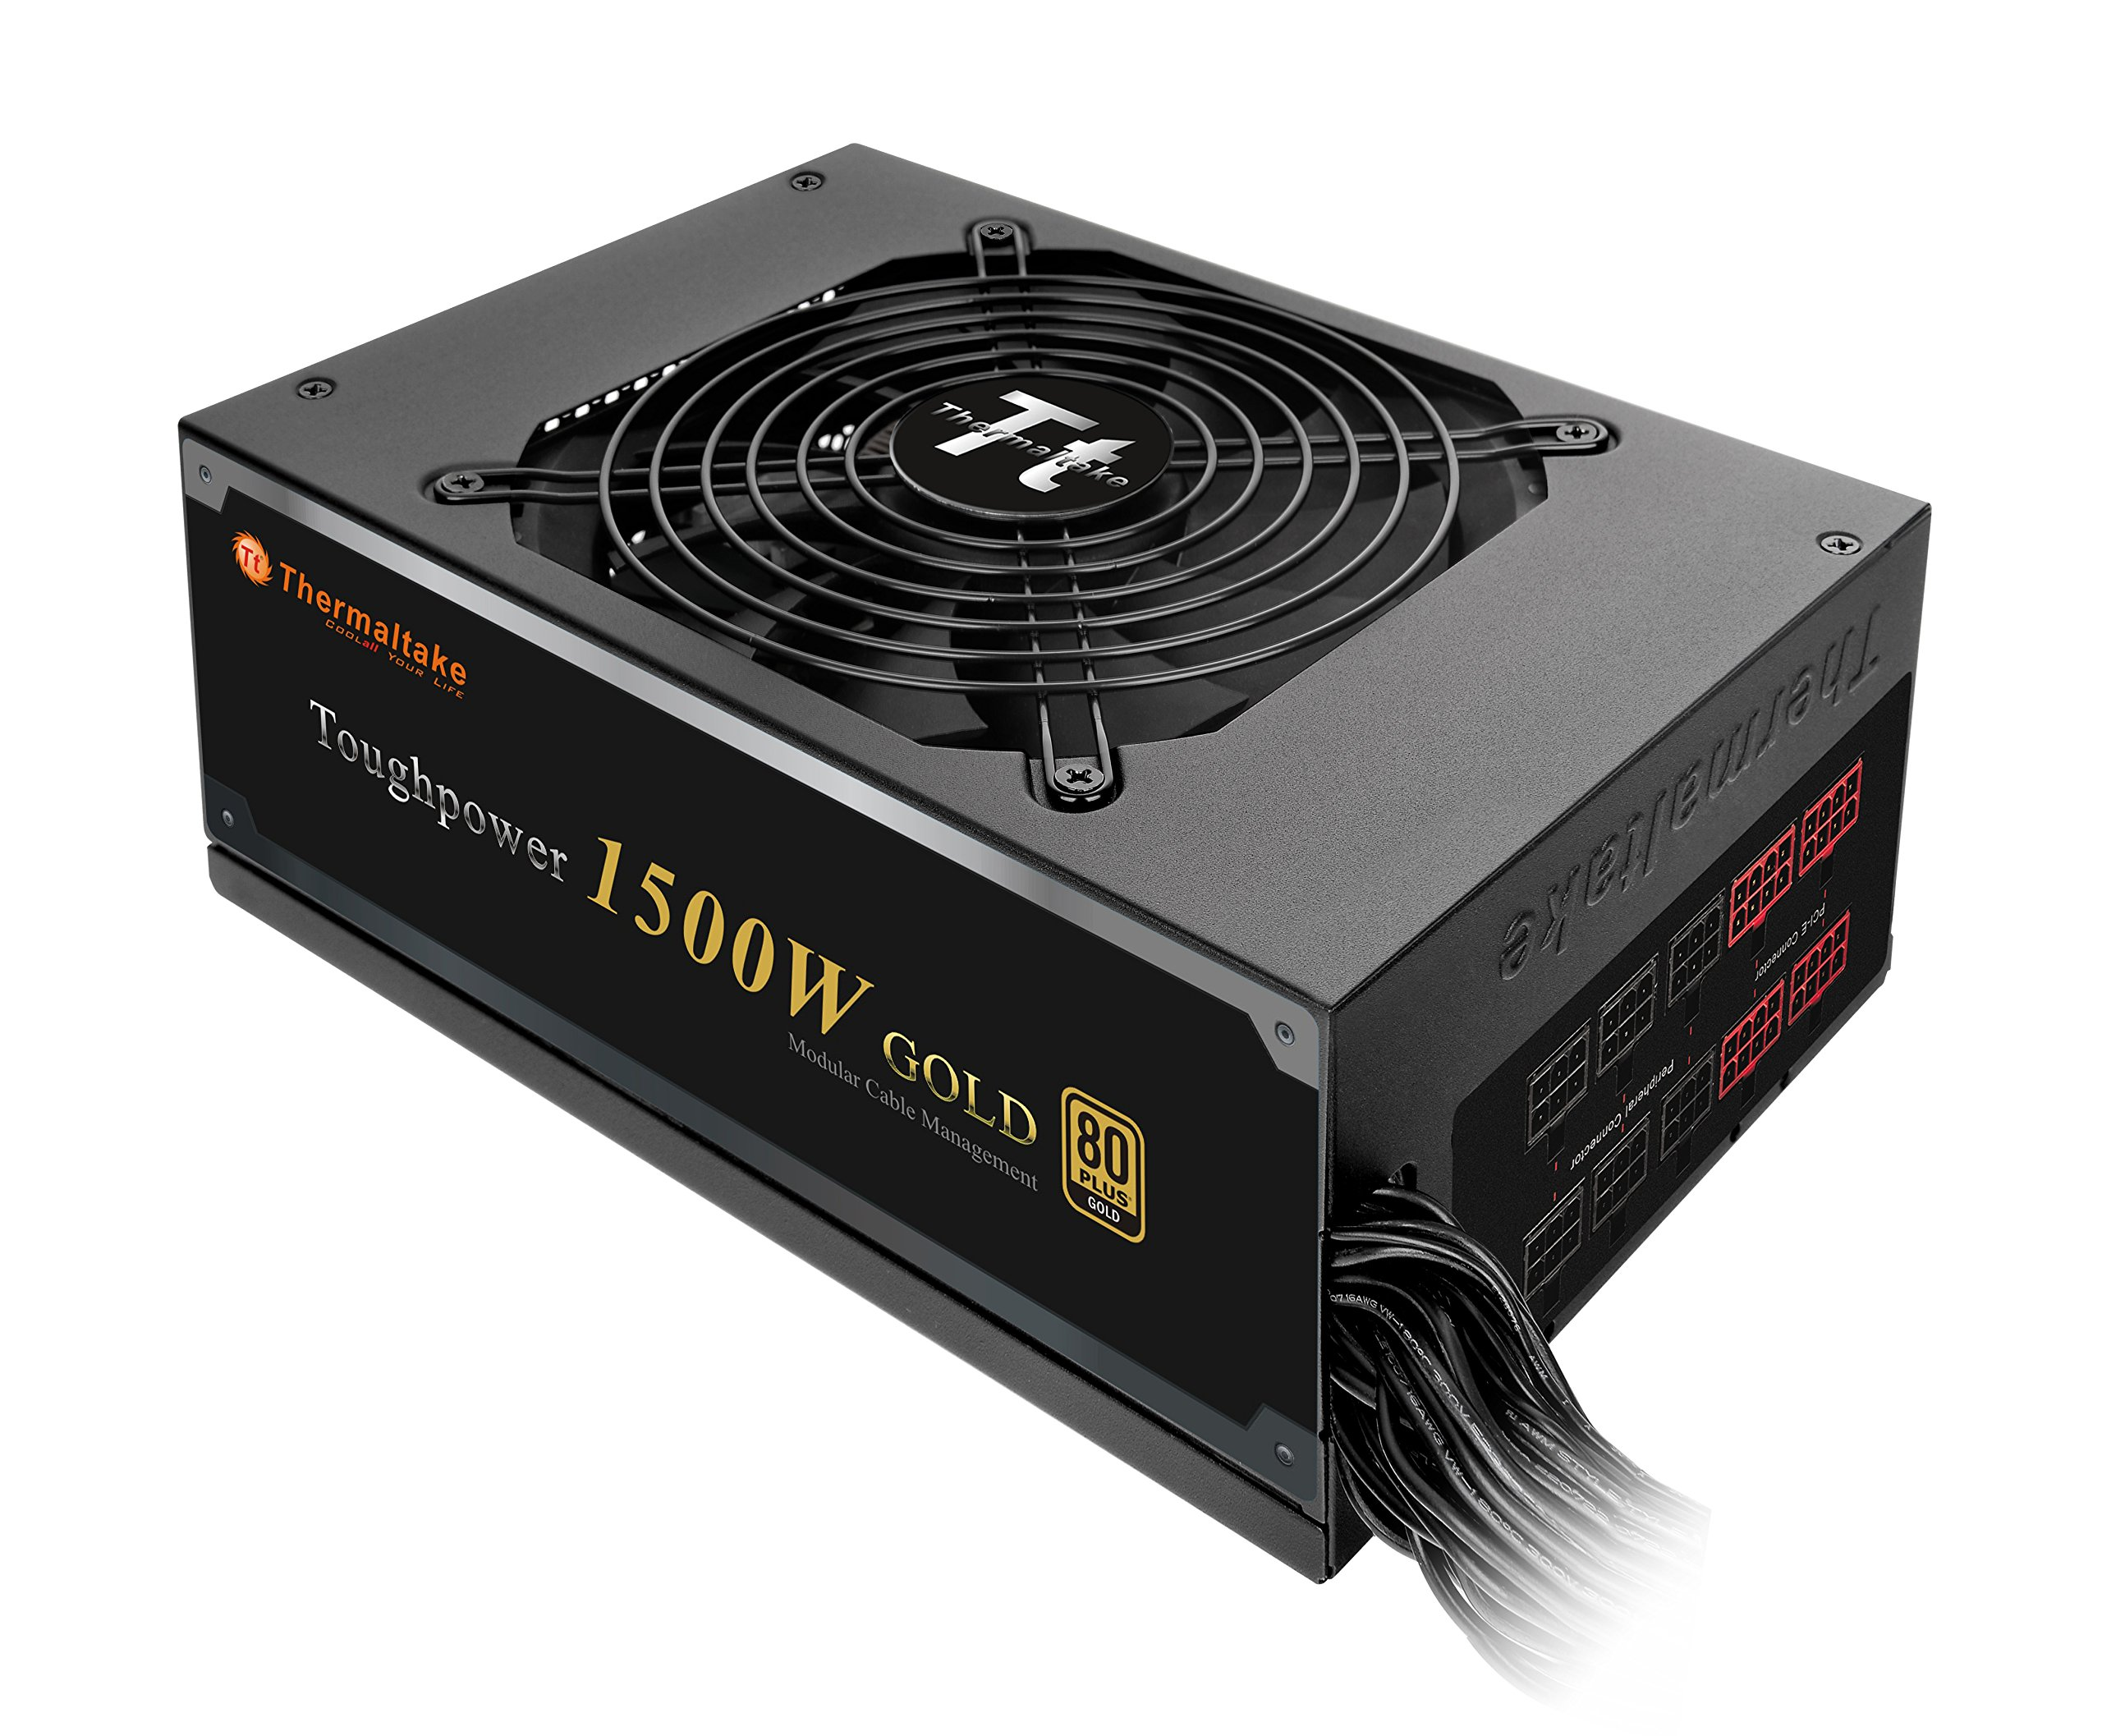 Thermaltake Toughpower 1500W 80+ Gold Semi Modular ATX 12V/EPS 12V Power Supply 5 YR Warranty PS-TPD-1500MPCGUS-1